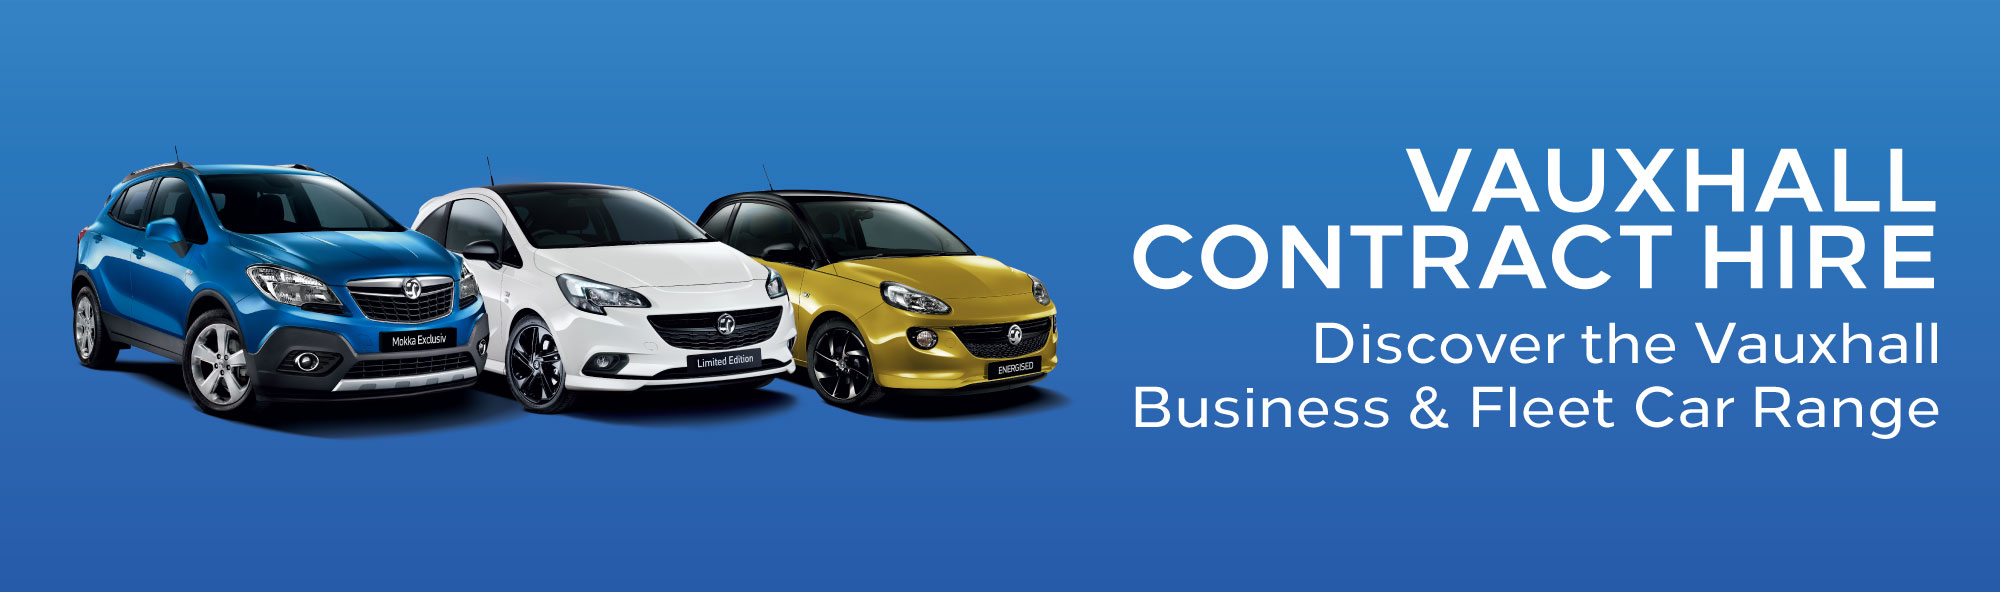 Vauxhall Contract Hire